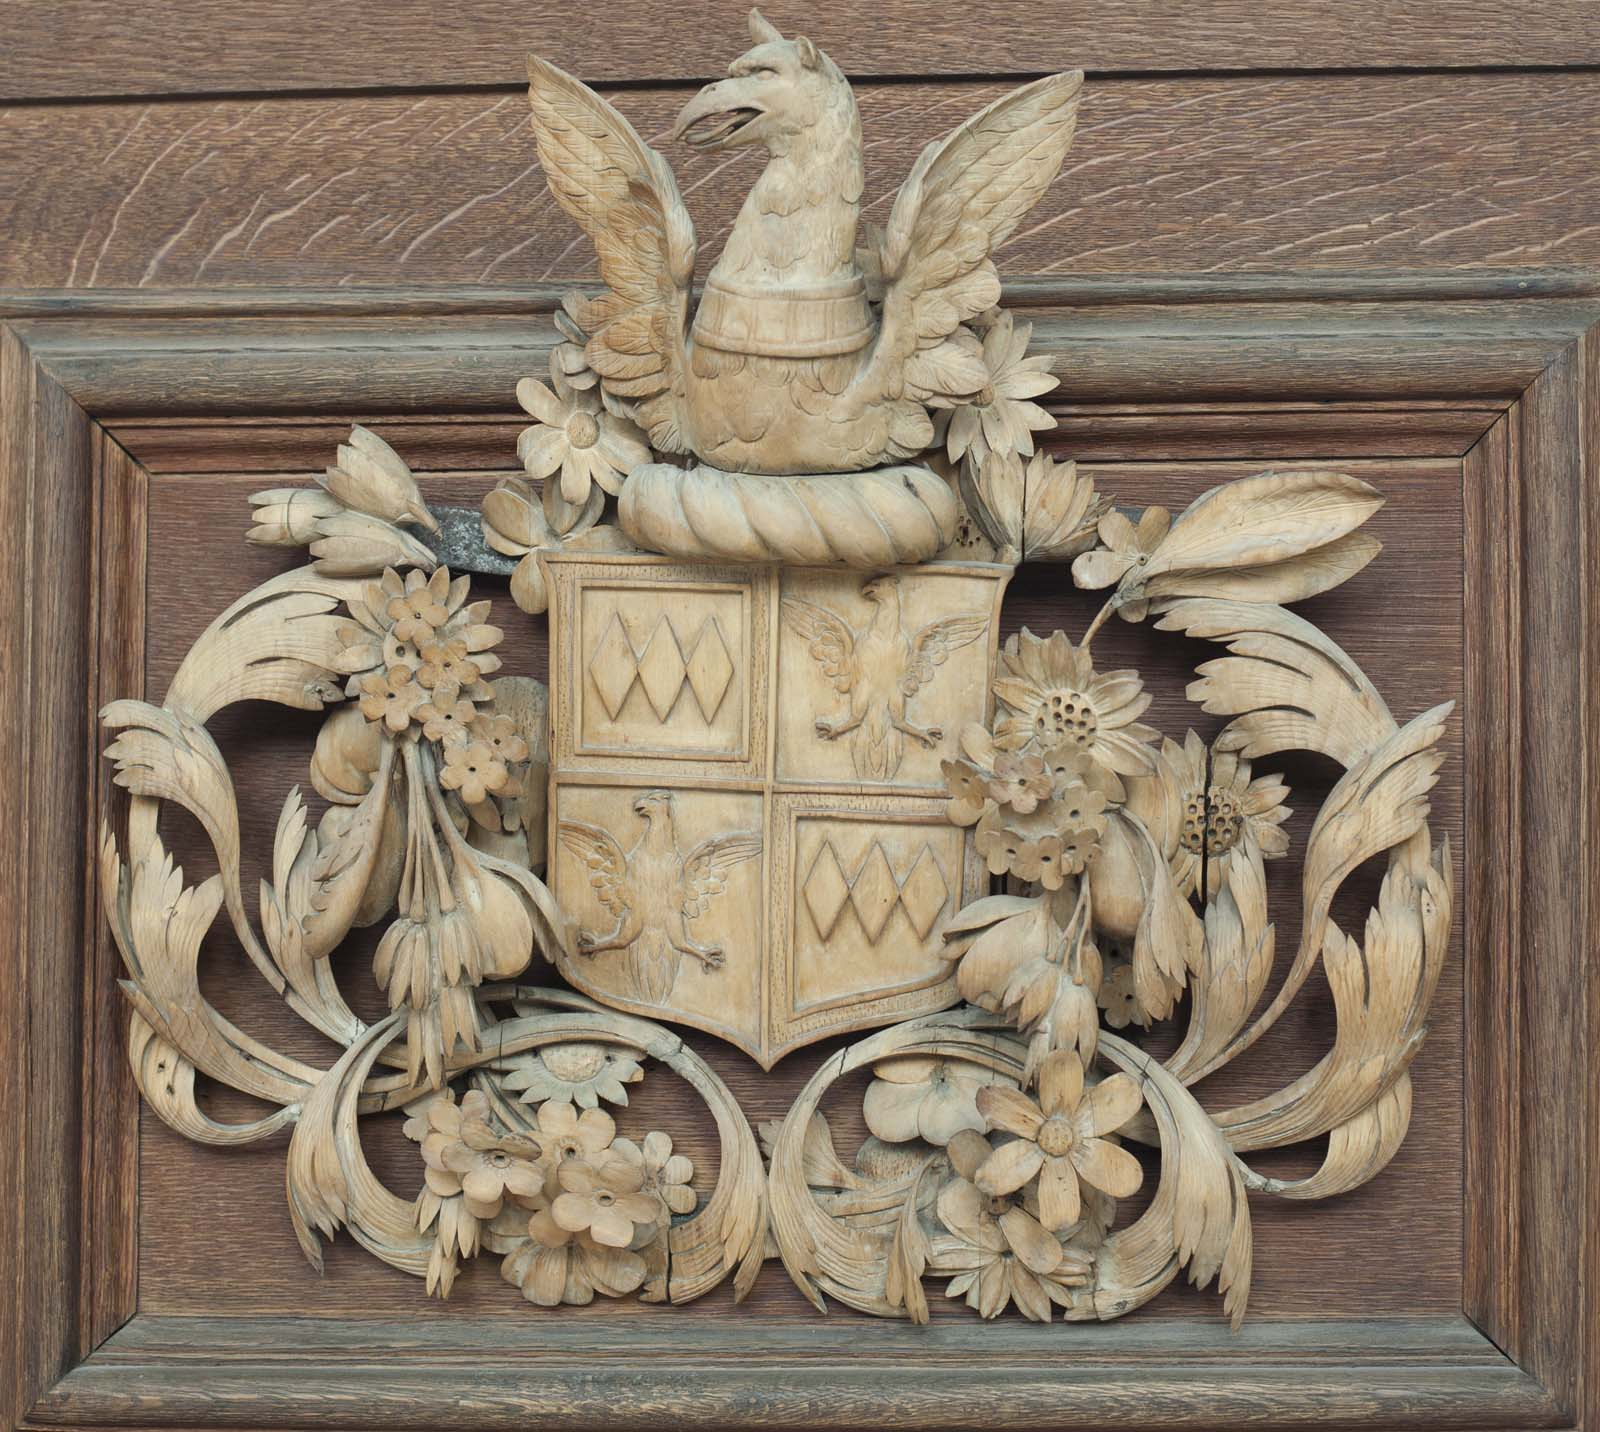 carved coat of arms with shield topped with a unicorn and flanked with foliage